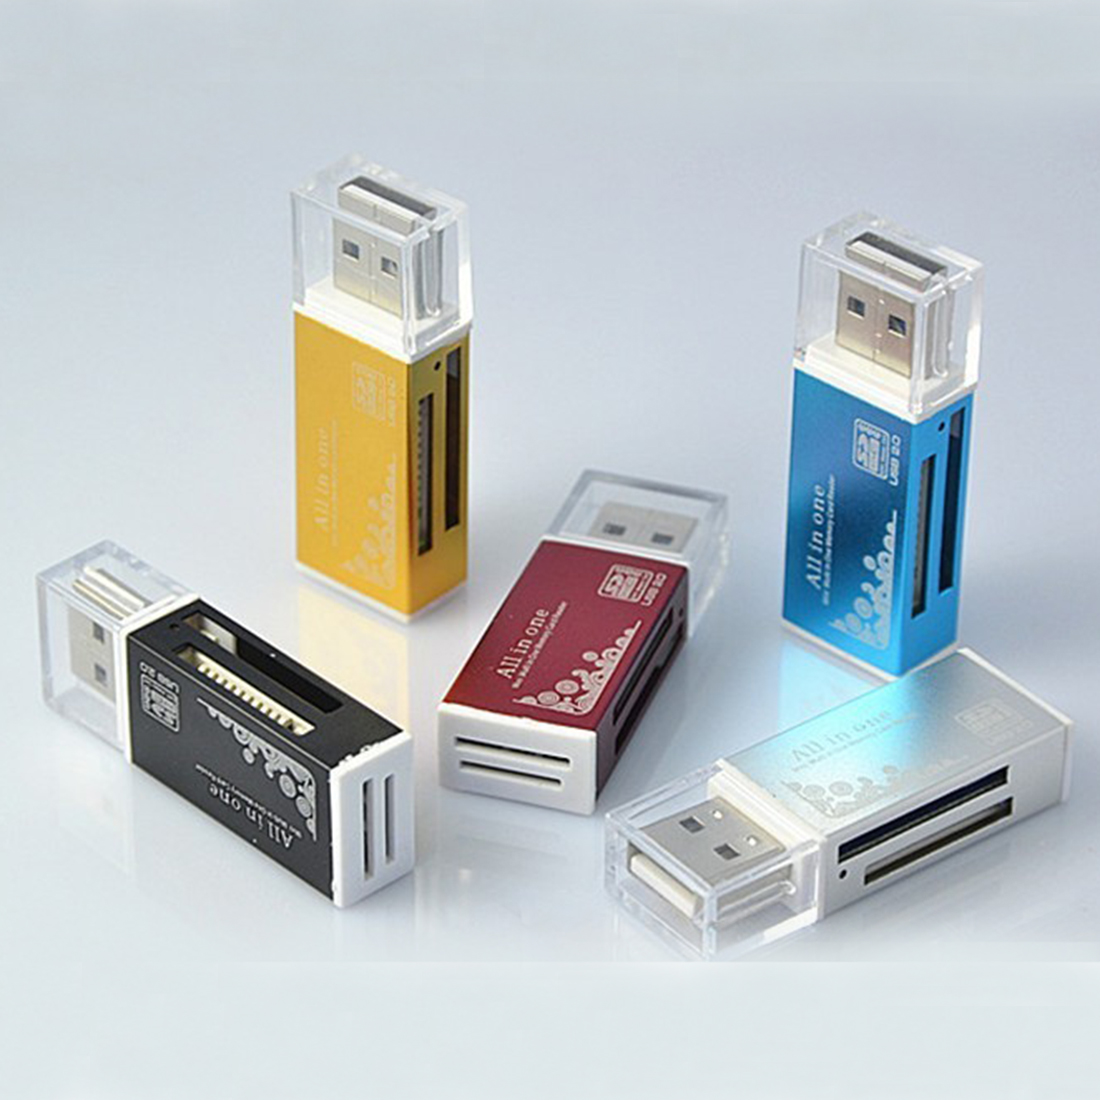 Etmakit Fashion All in One Card Reader Multi for SD SDHC MMC RS MMC TF Micro SD MS Random Color slinky and fashion for micro sd sdhc tf m2 mmc ms pro duo all in 1 usb 2 0 multi memory card reader high transmission speed